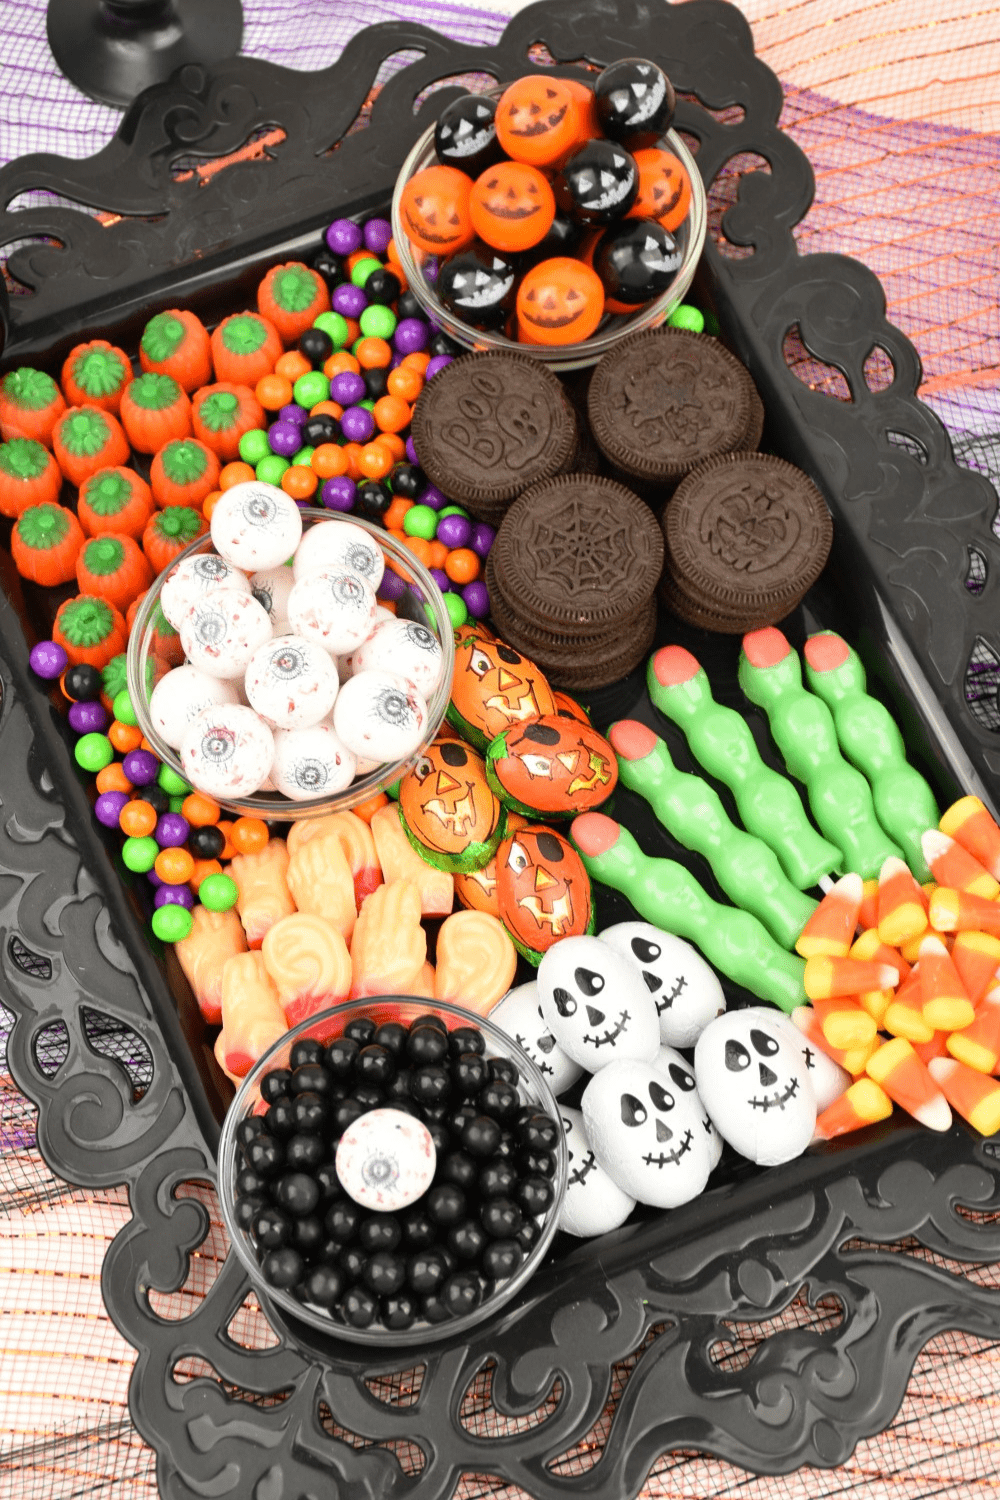 Filled with a delicious selection of traditional Halloween sweets, this chillingly cute Halloween Candy Charcuterie Board is one of my favorite dessert charcuterie boards to make!